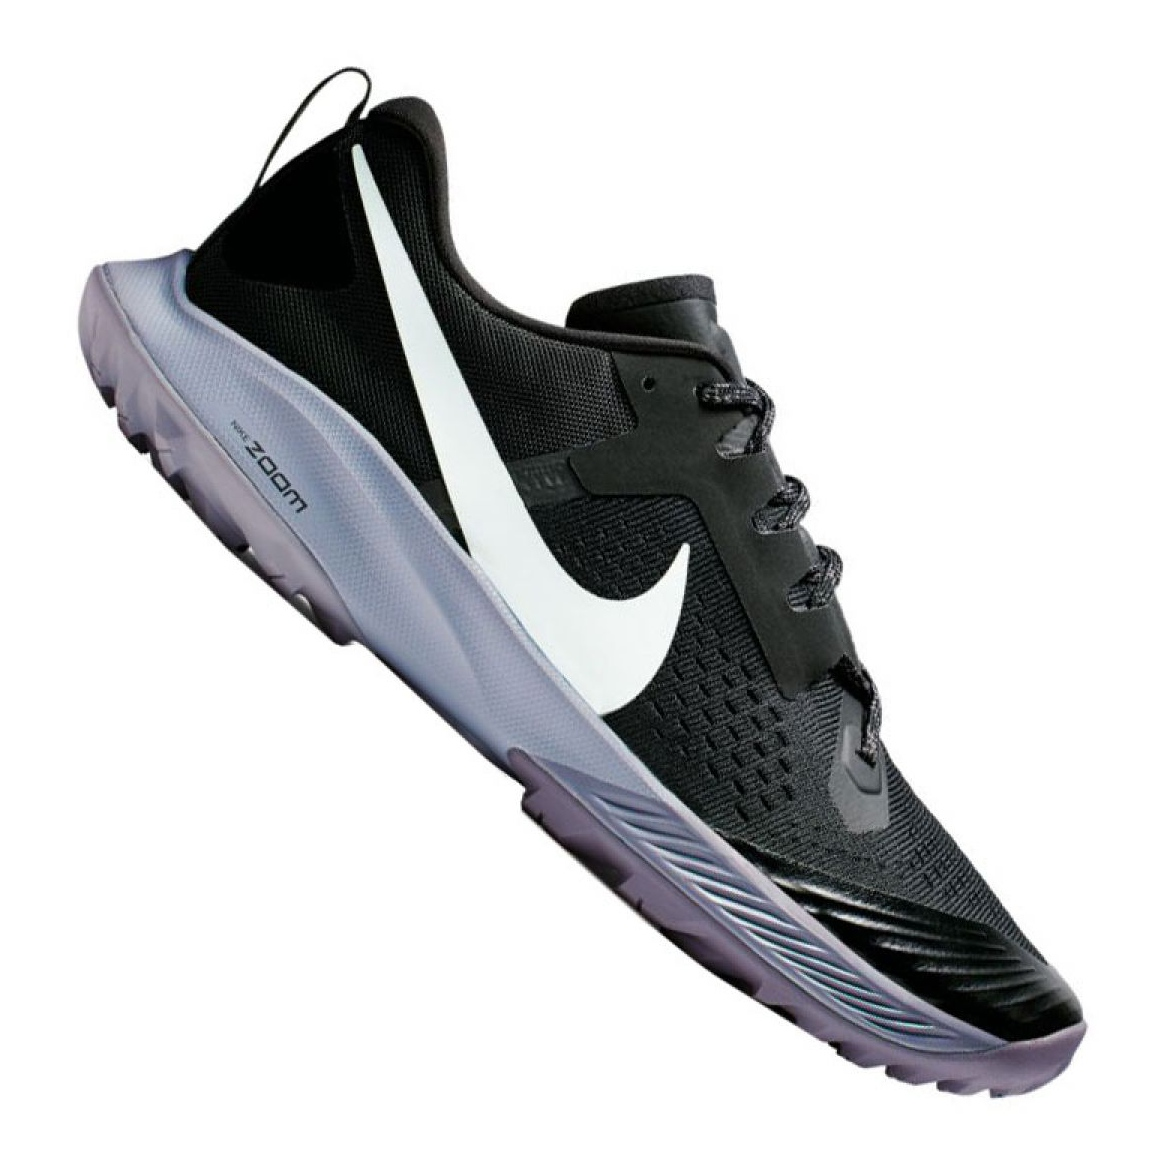 Details about Nike Air Max Graviton Black White Men Running Casual Shoes Sneakers AT4525 001